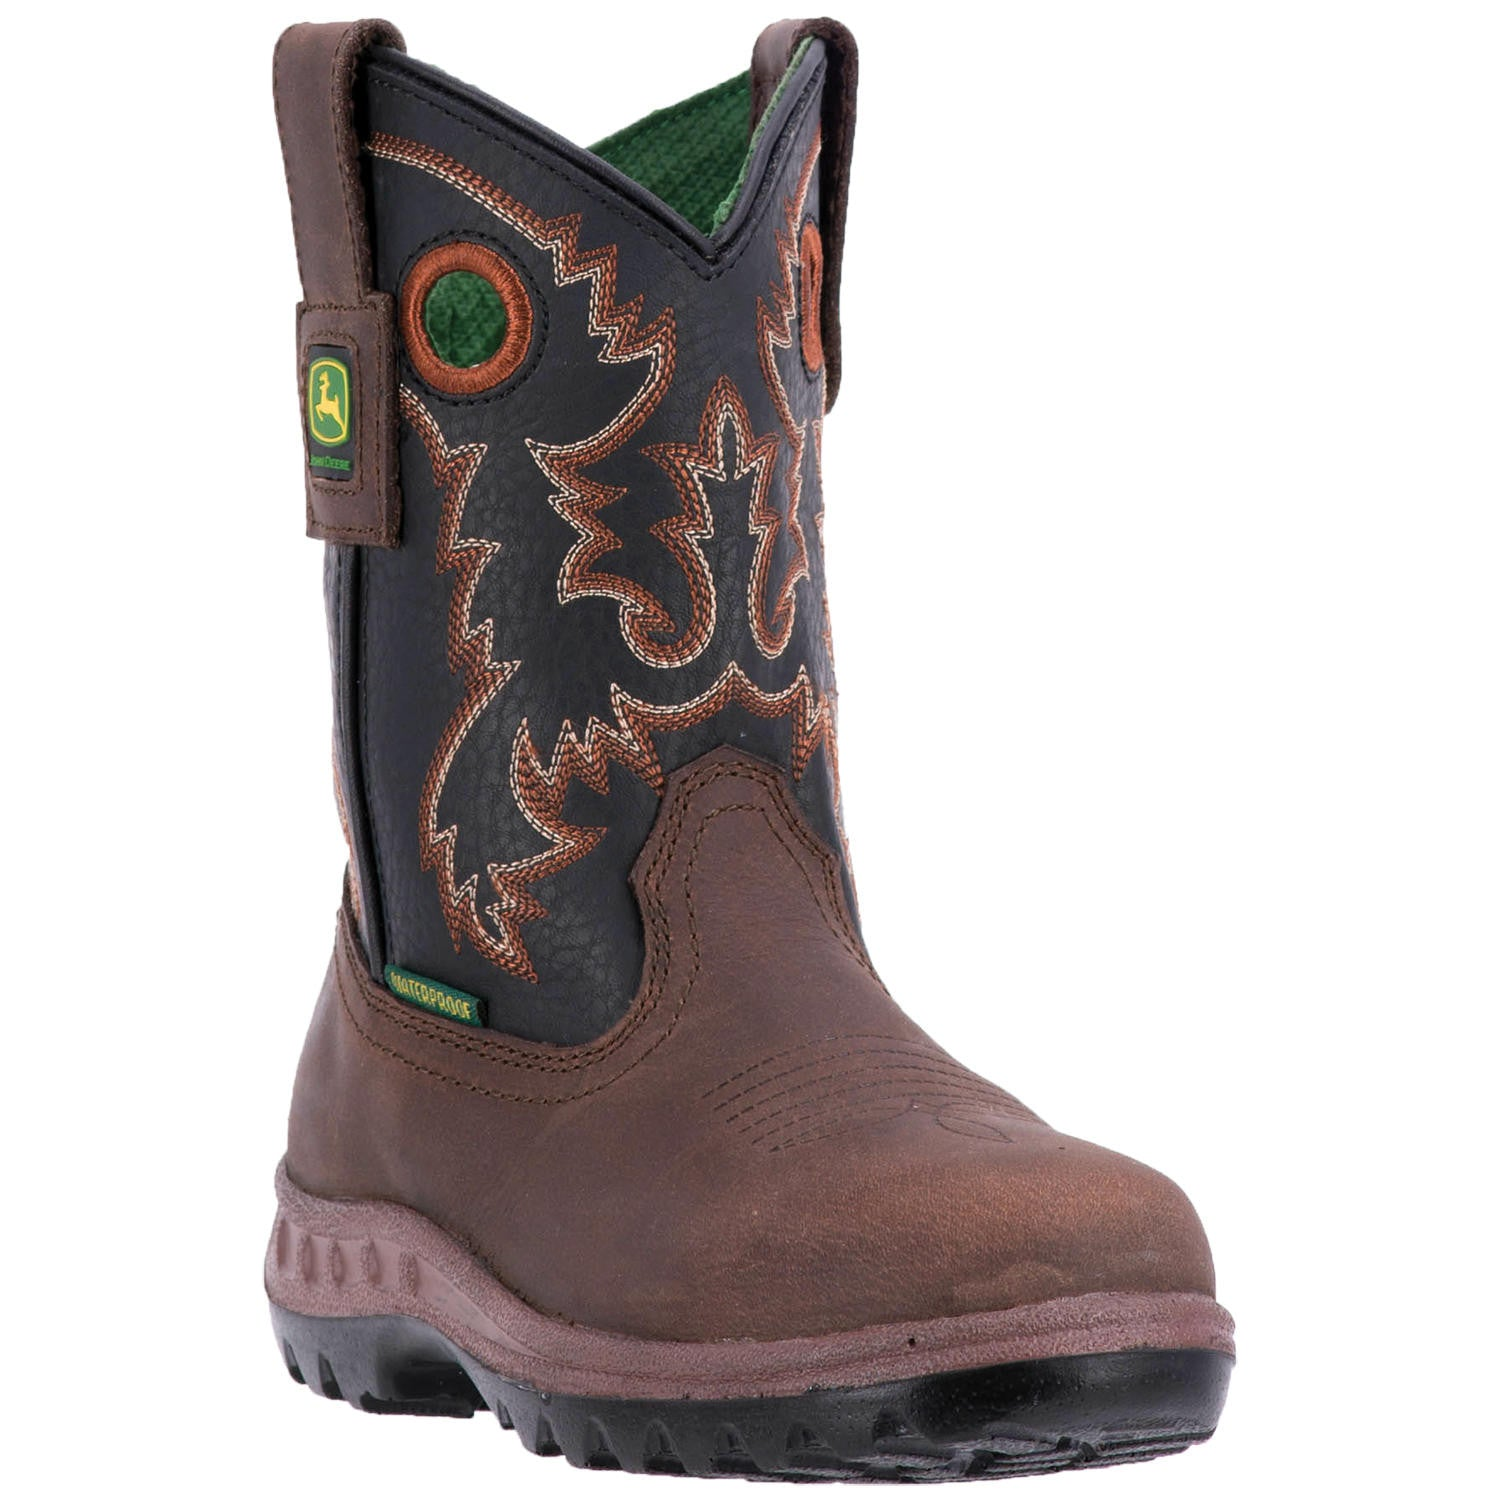 JOHN DEERE CHILDREN'S  LEATHER JOHNNY POPPER CHILDREN'S BROWN - BLACK